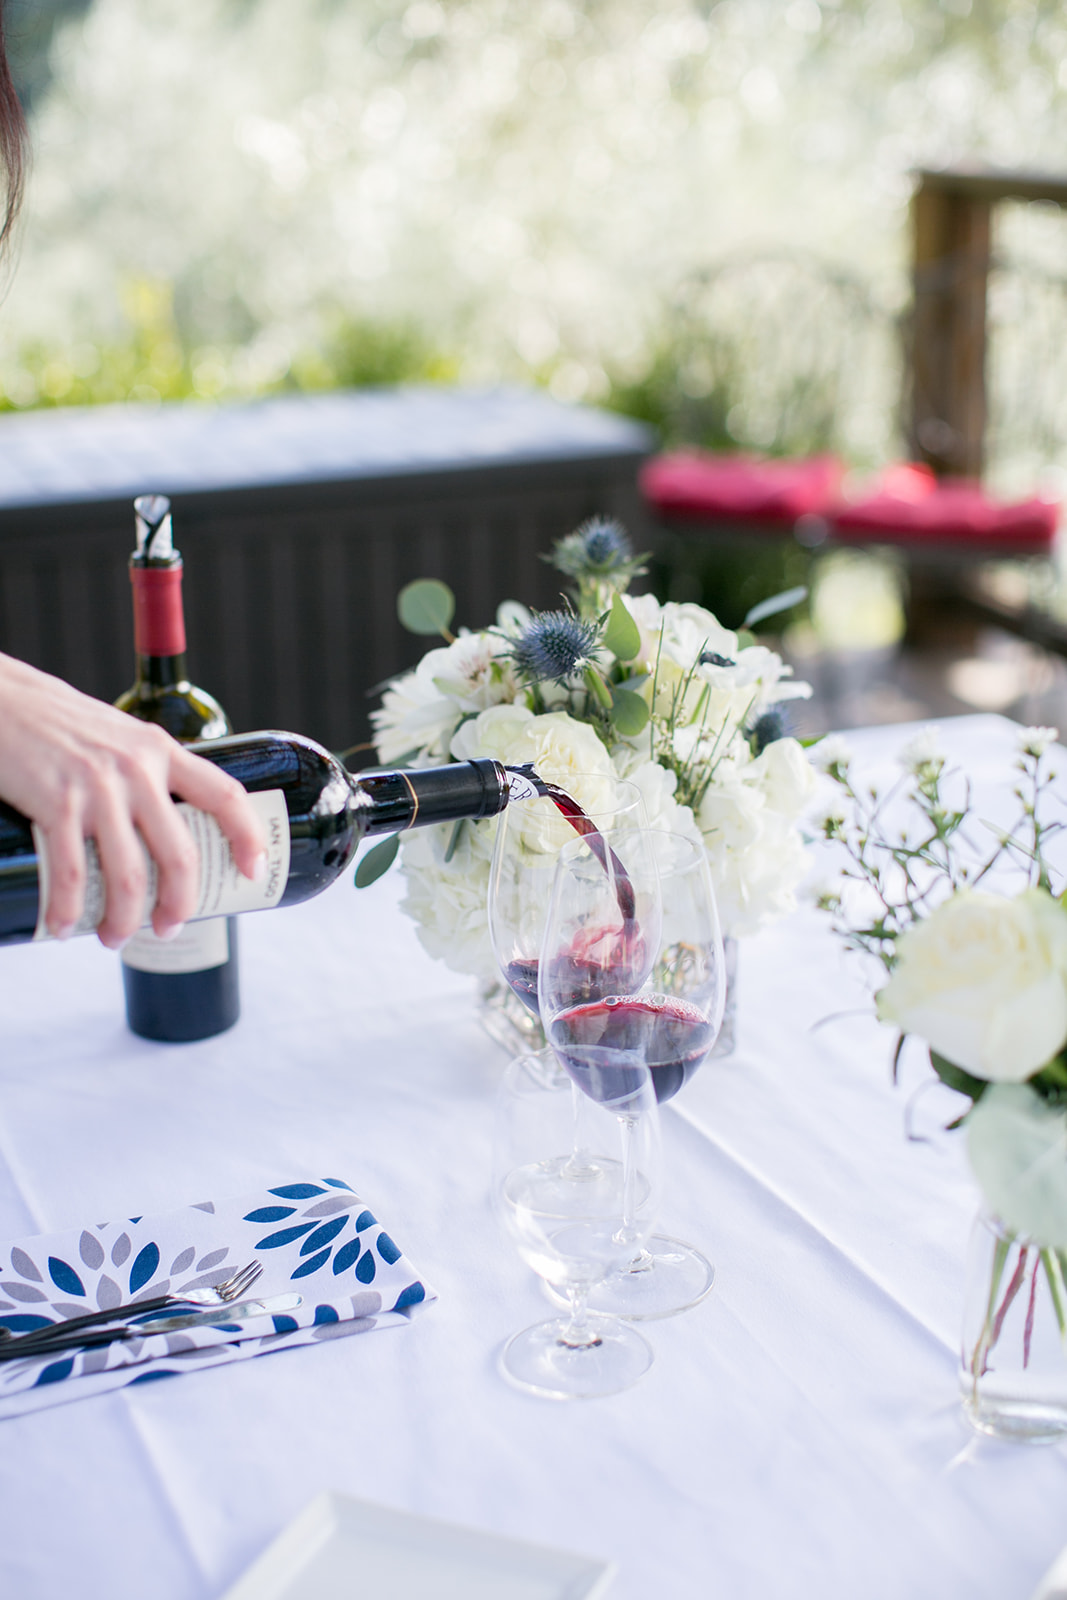 pouring wine at pretty table